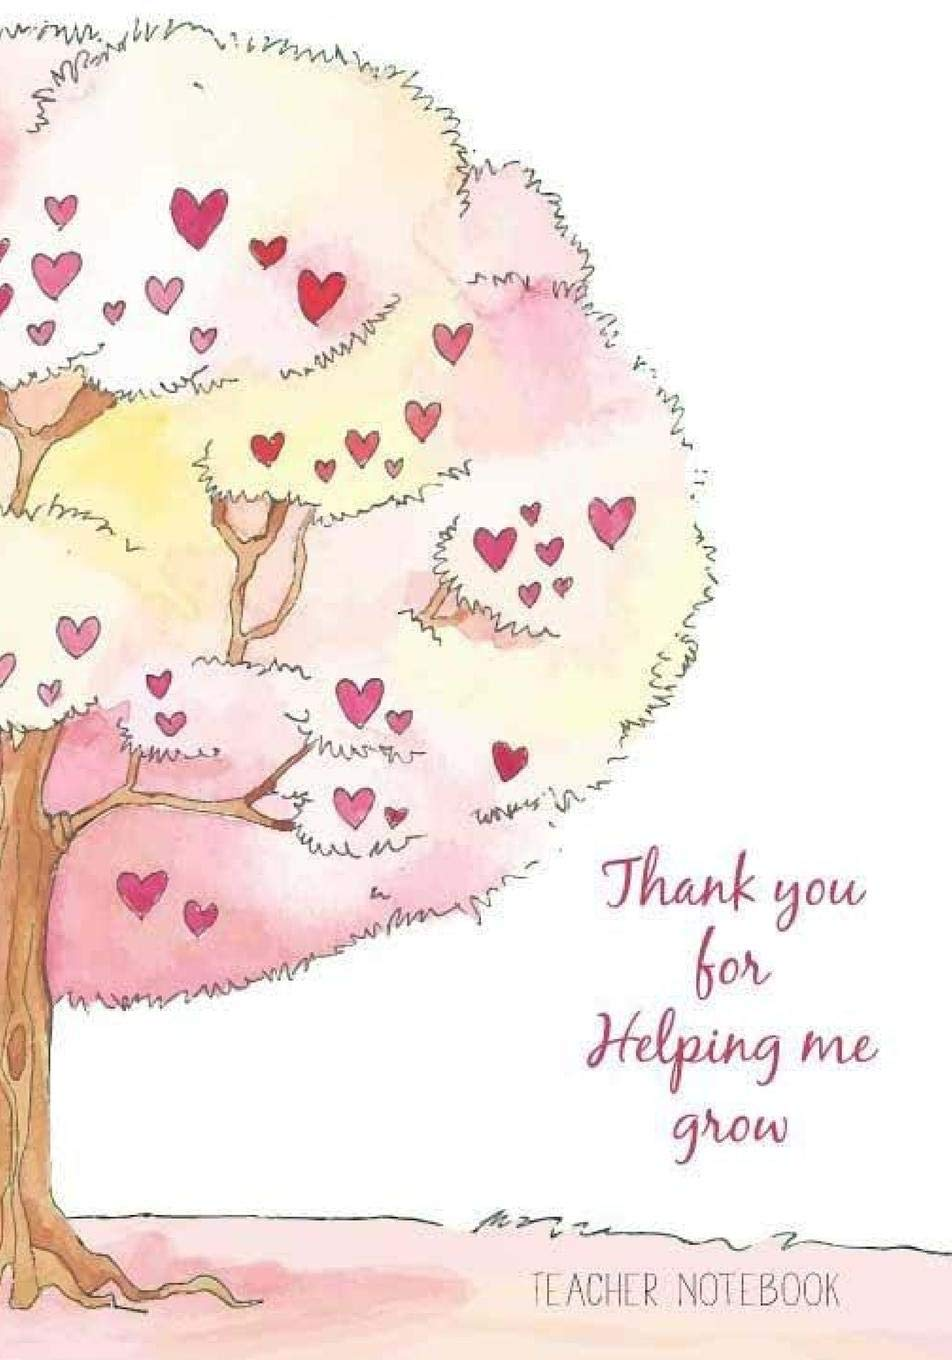 Thank You For Helping Me Letter from images-na.ssl-images-amazon.com